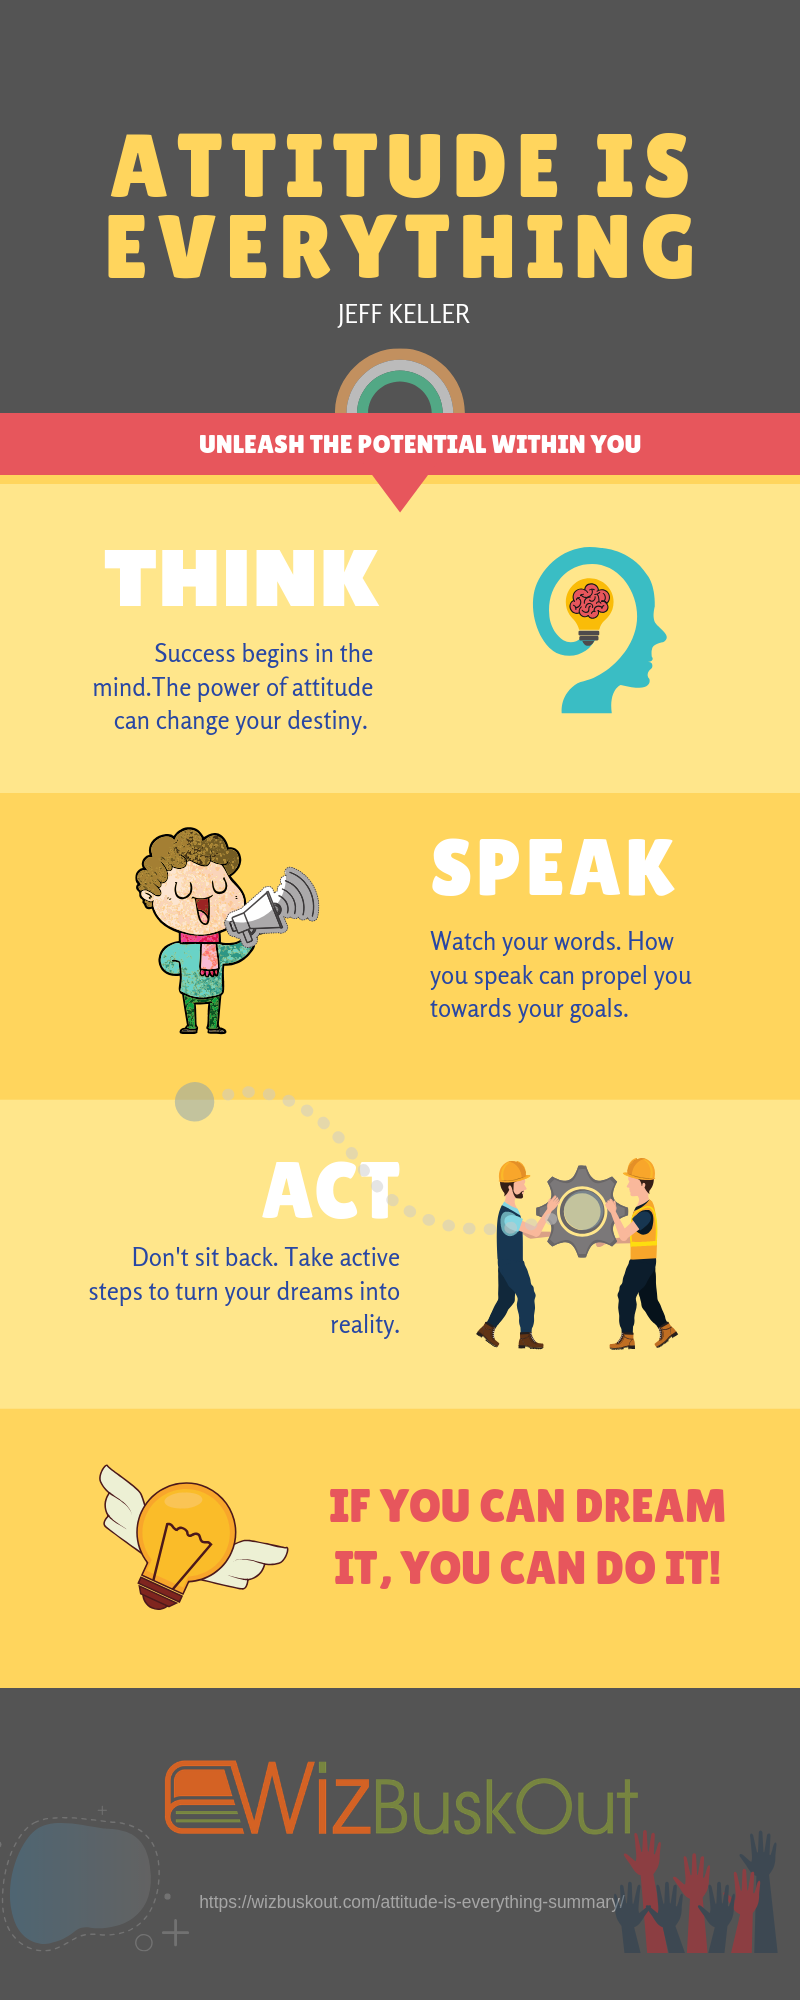 Attitude is everything infographic